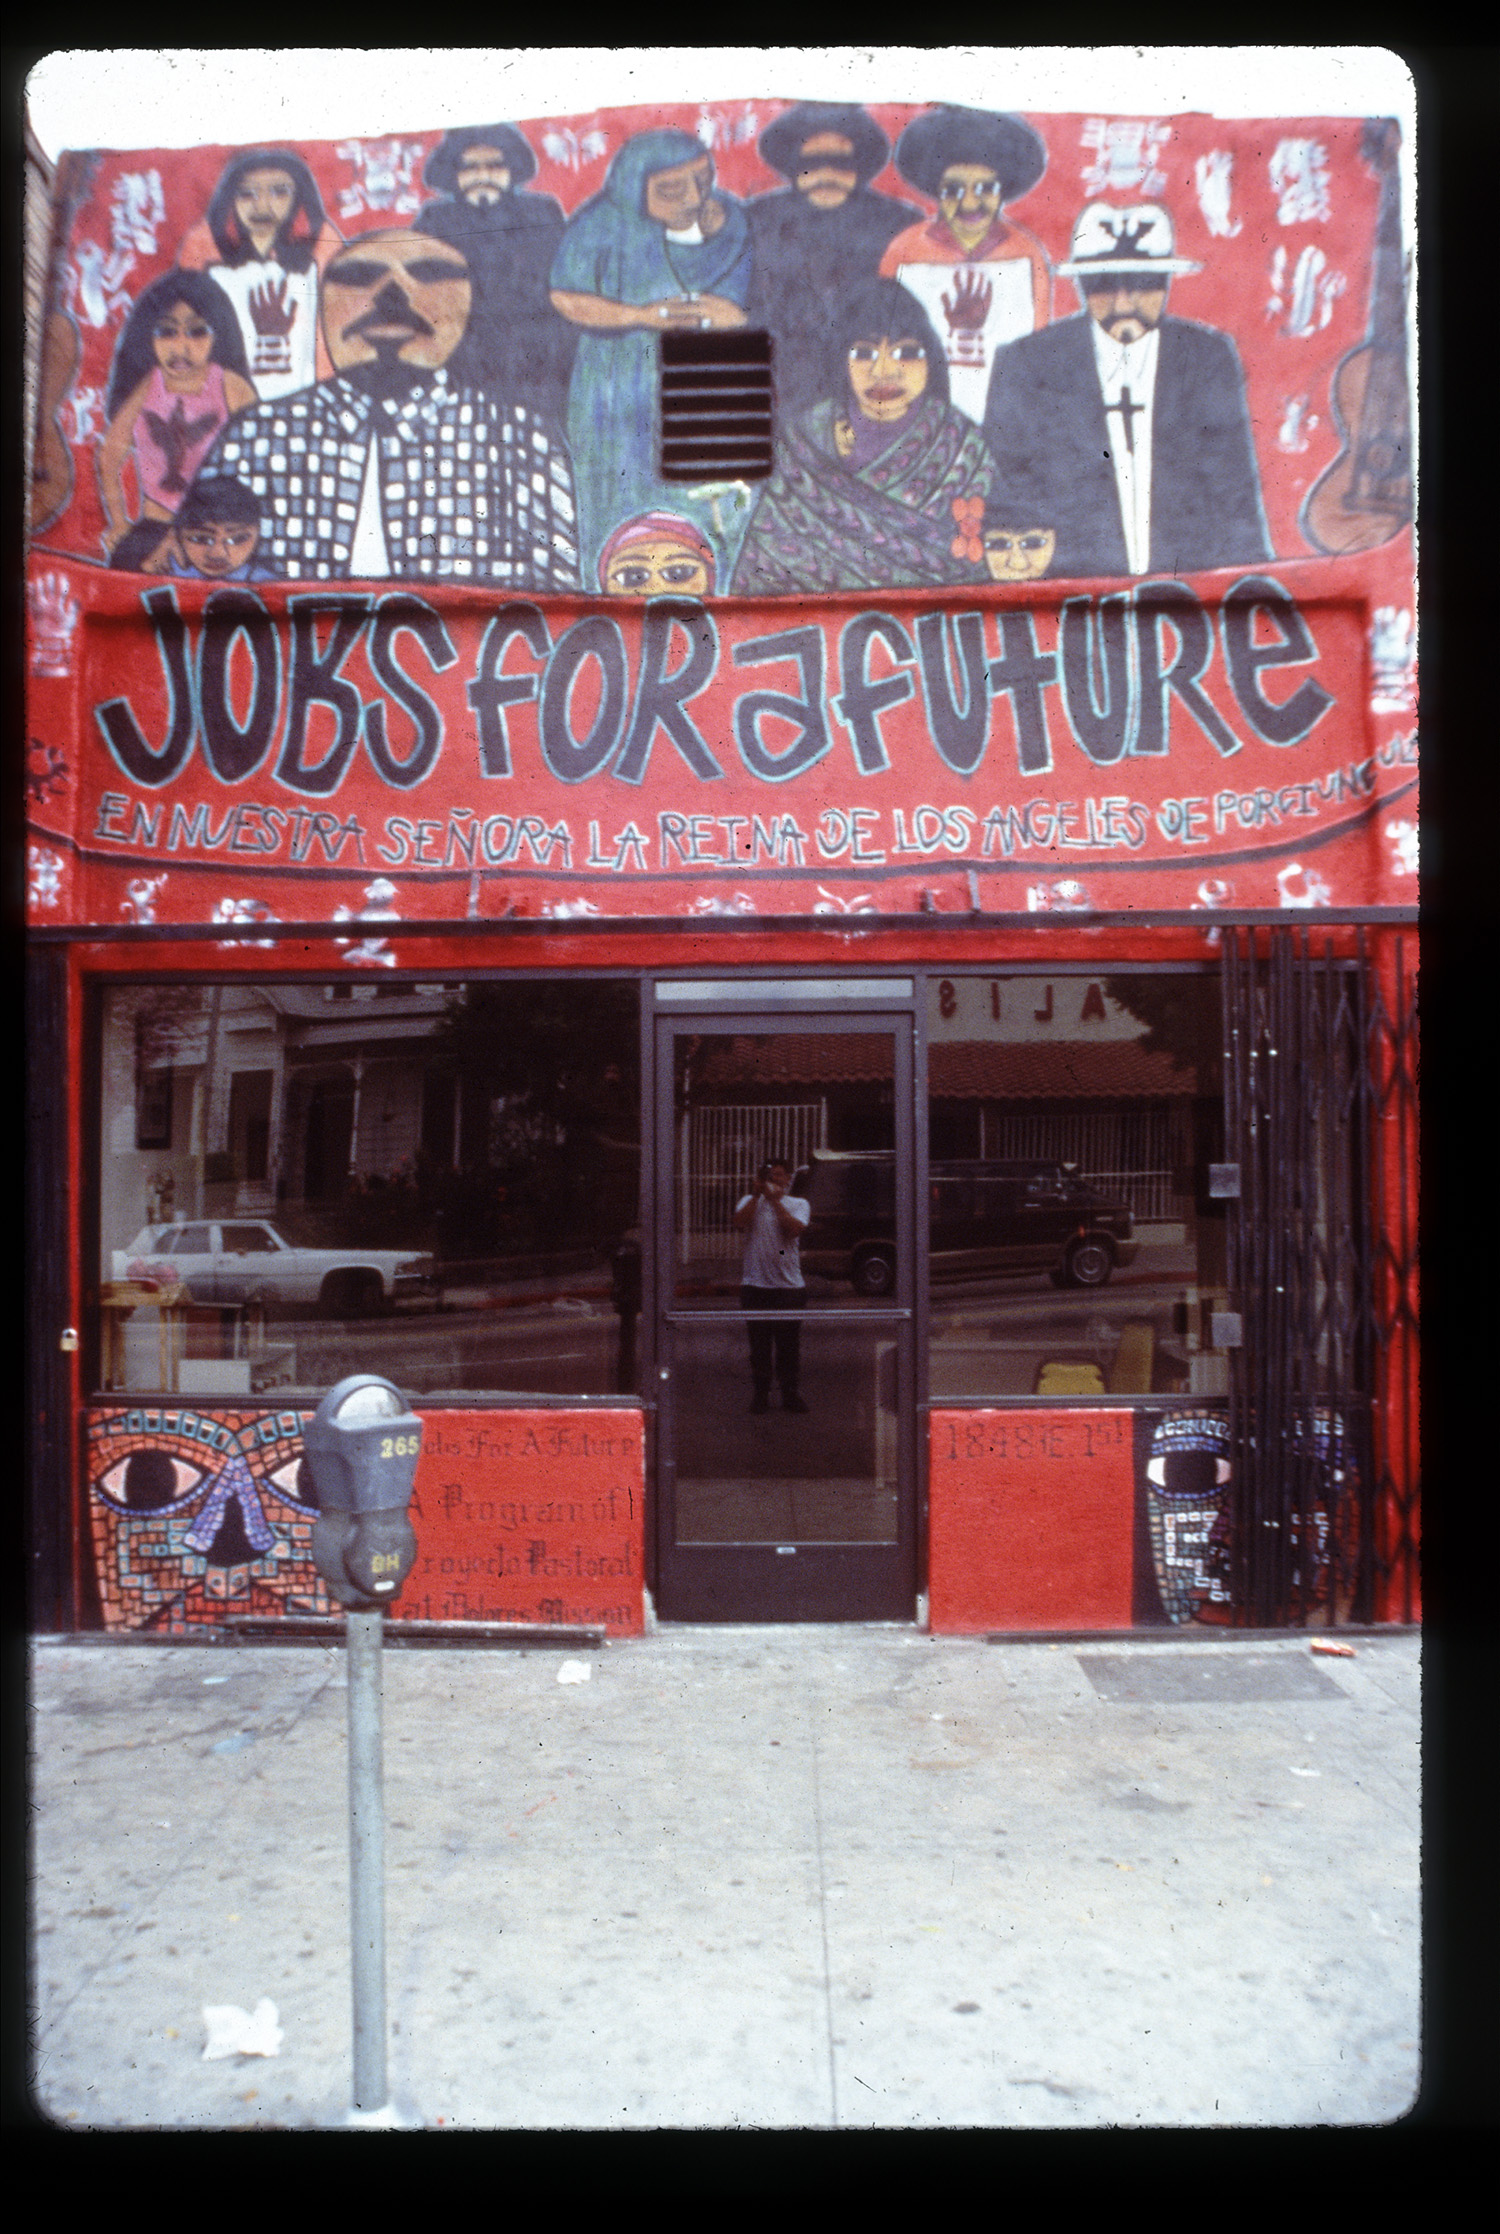 Jobs For a Future, East Los Angeles, California, 1994.